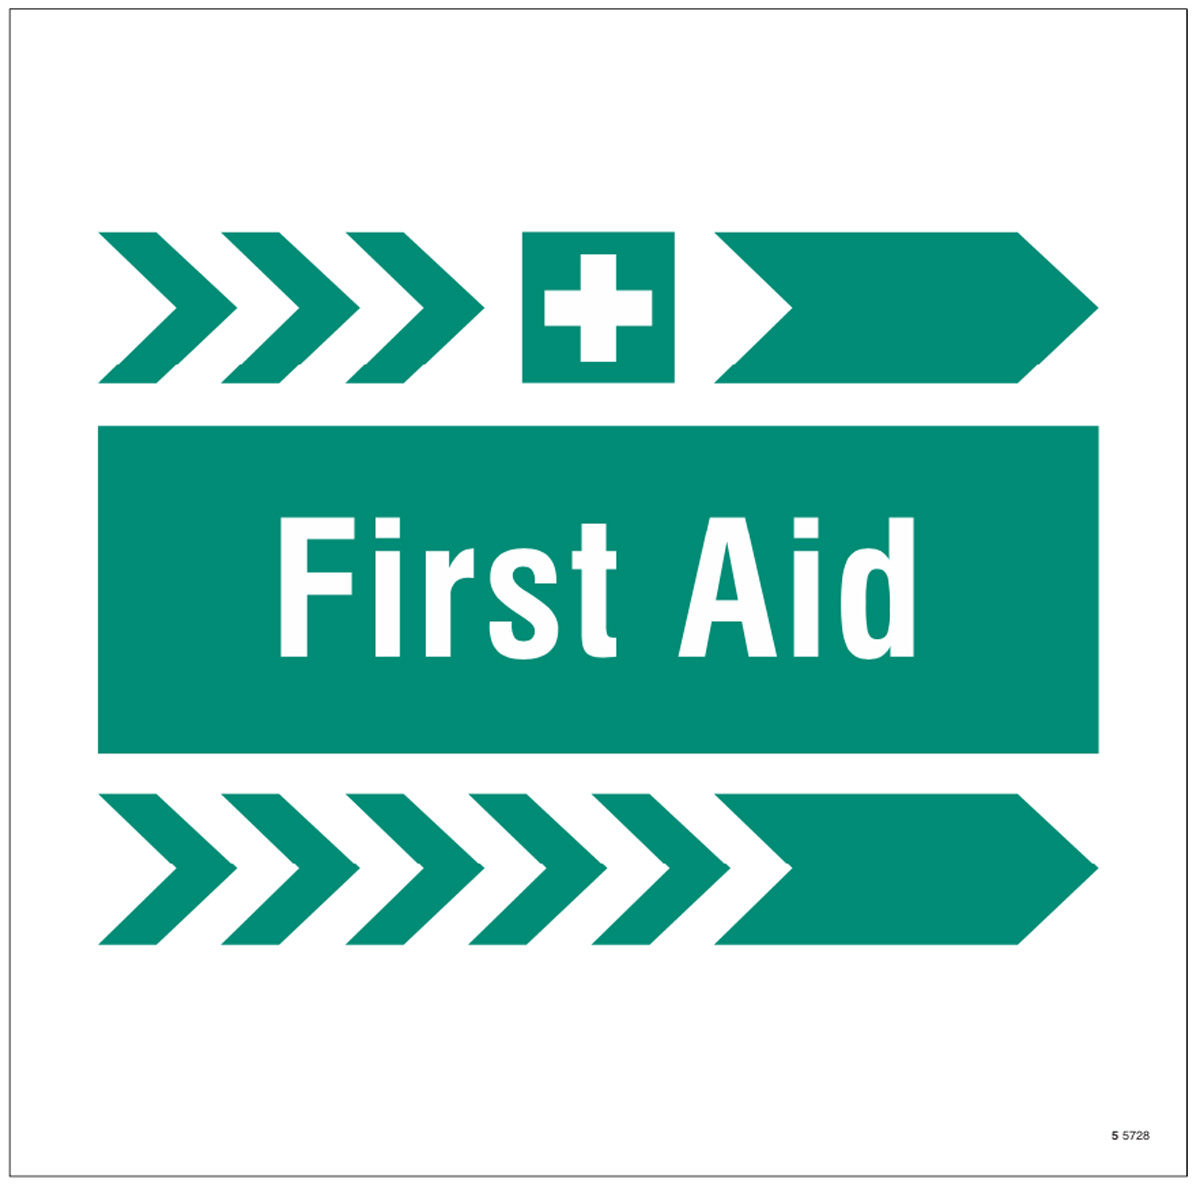 First aid, arrow right site saver sign 400x400mm